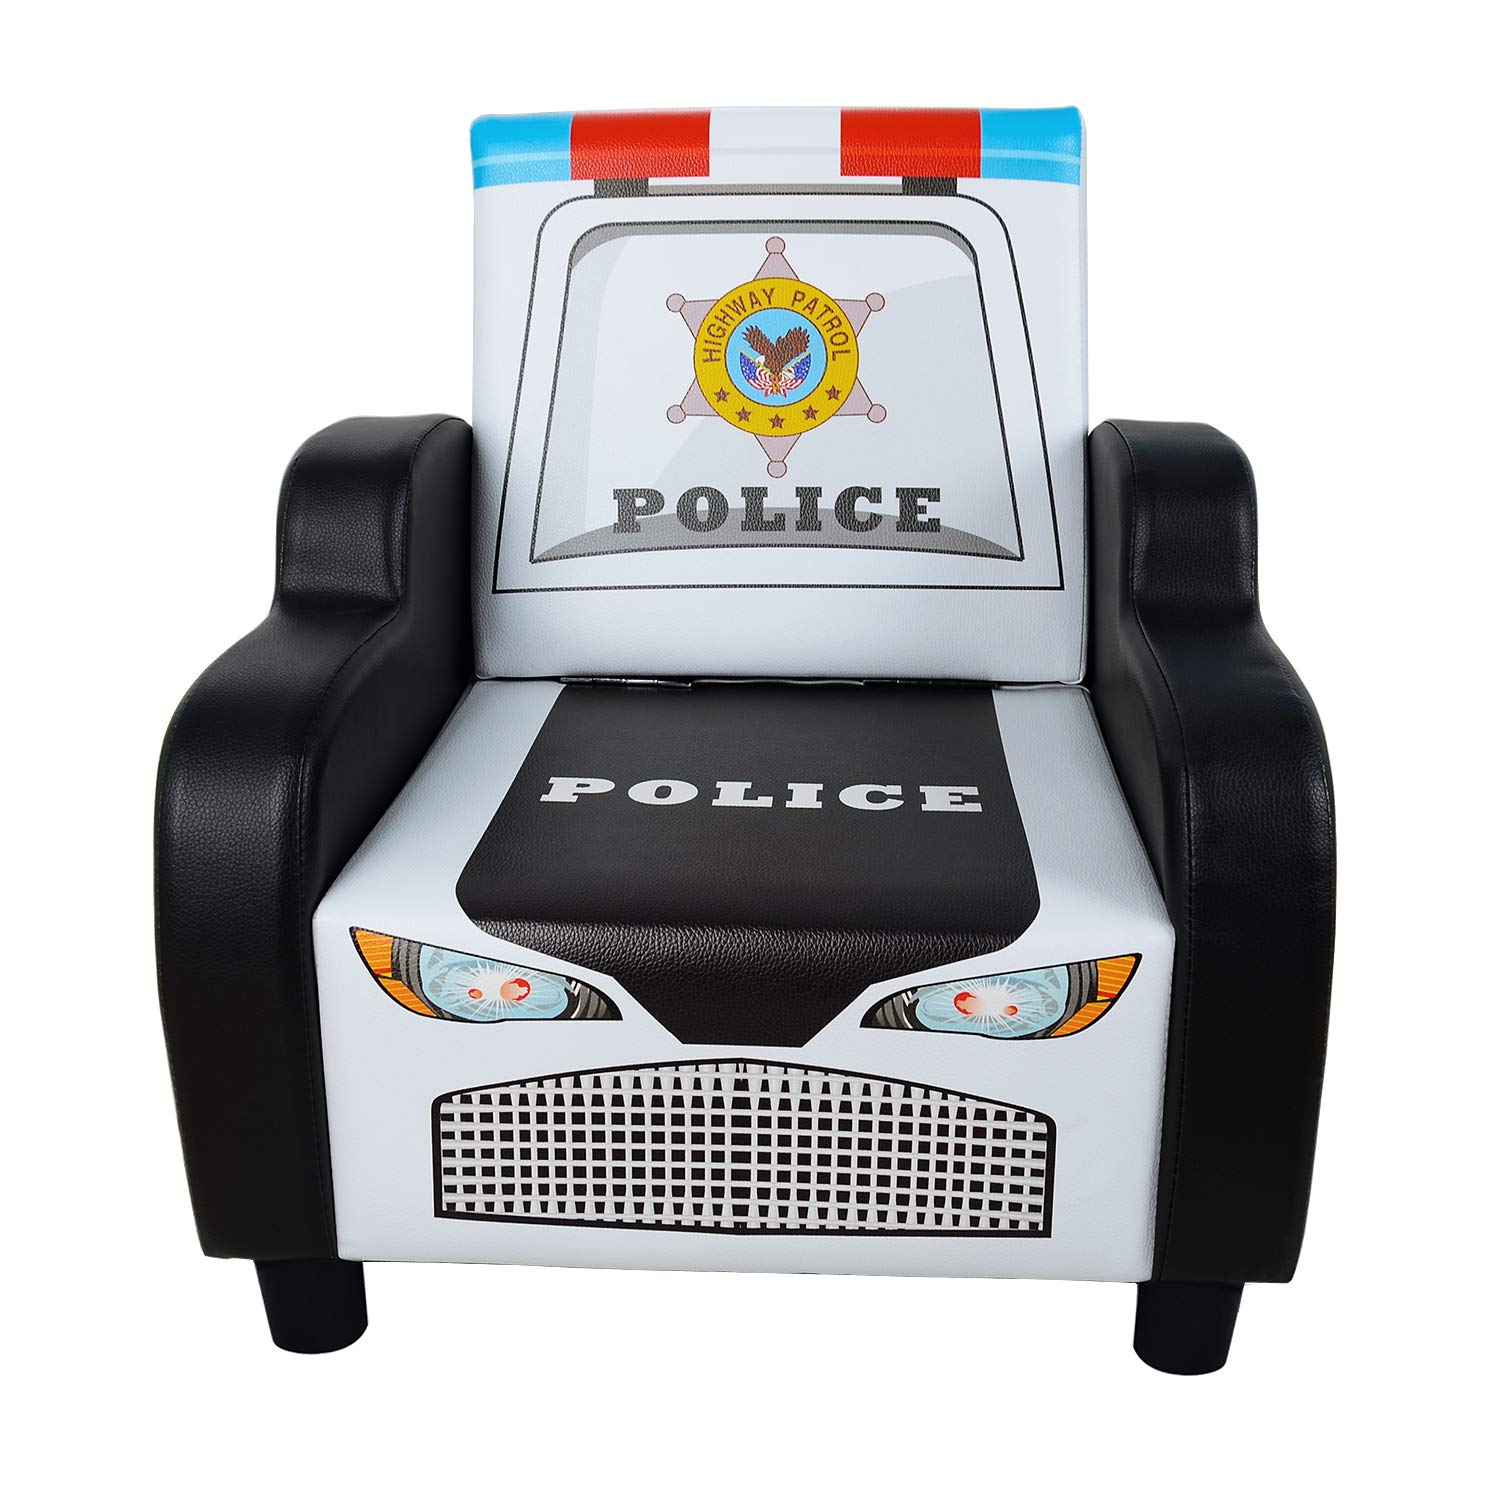 Children's Police Car Shape Sofa Chair Black Kid's Armrest Couch Small Kids Reading Chair Living Room Bedroom Furniture Boys & Girls